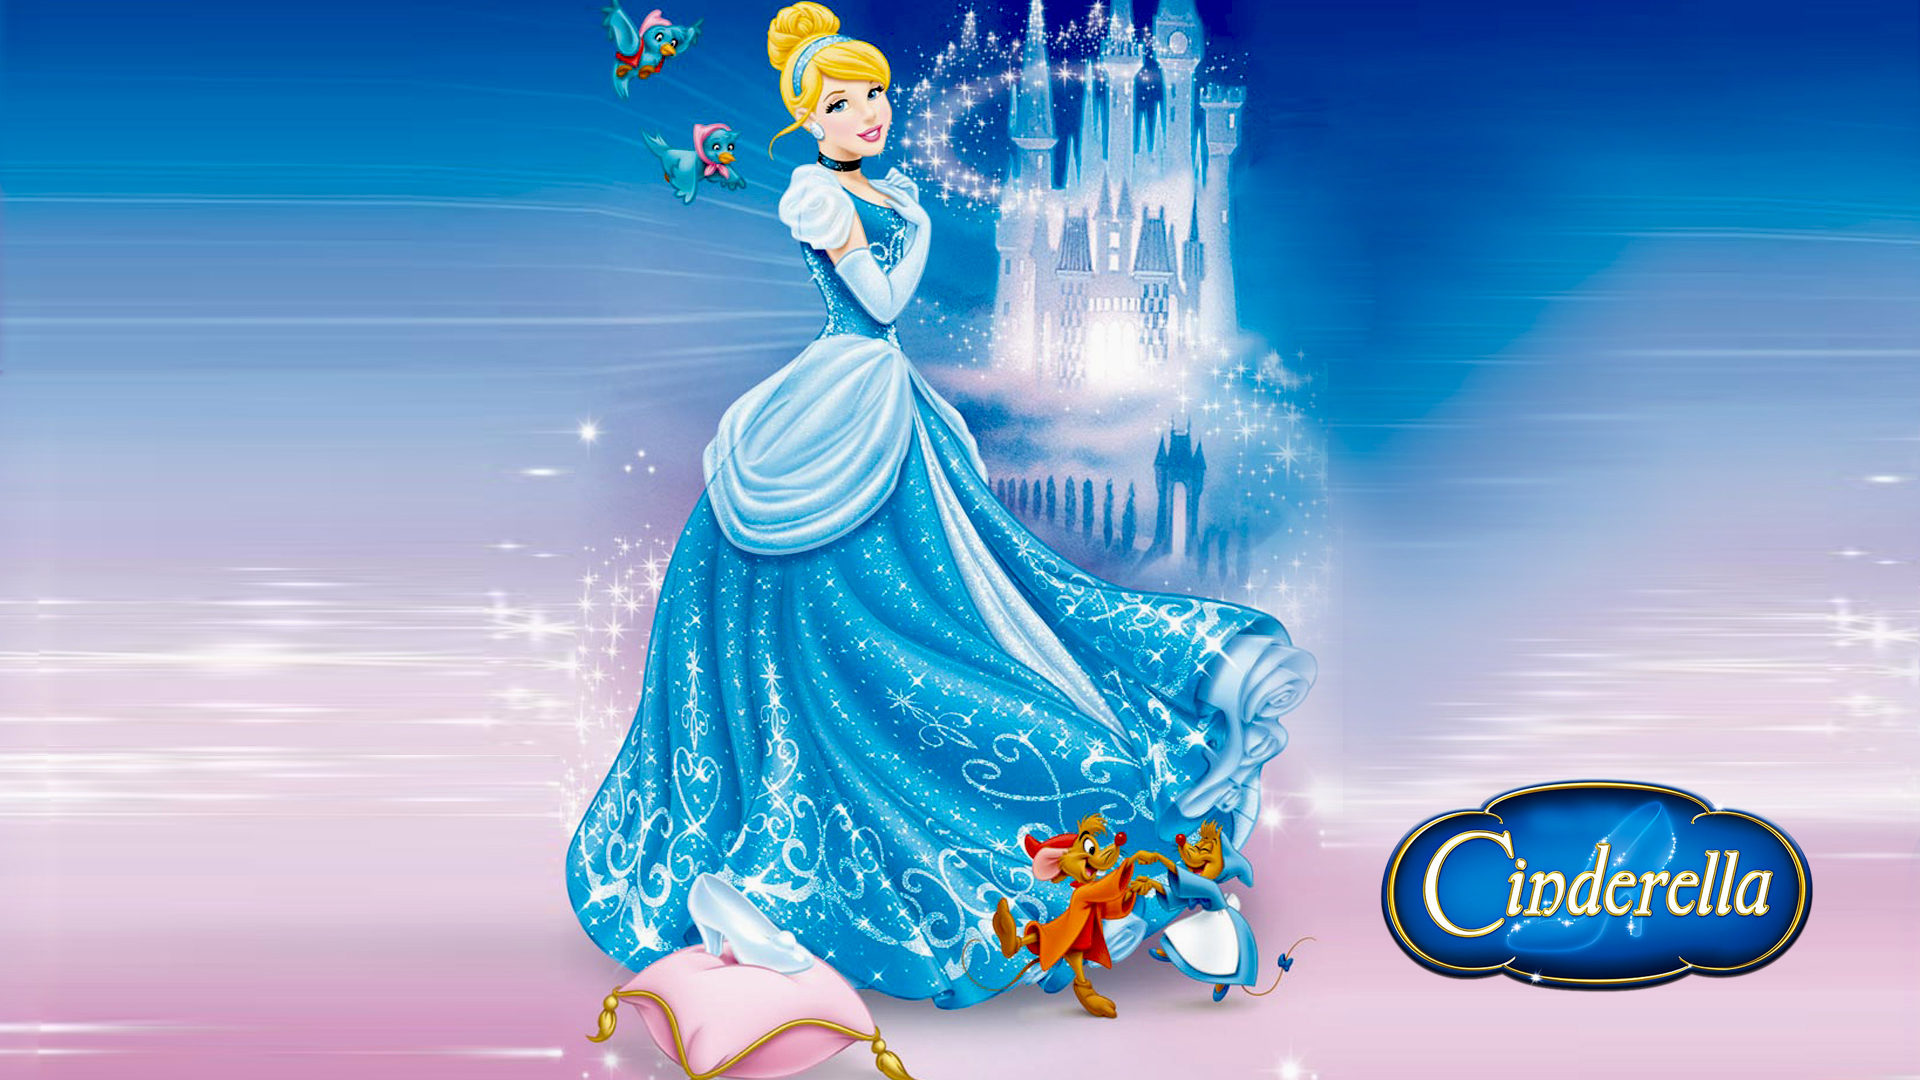 Disney Cars Wallpapers Free Castle Of Cinderella And Friends Jaq And Perla Cartoons